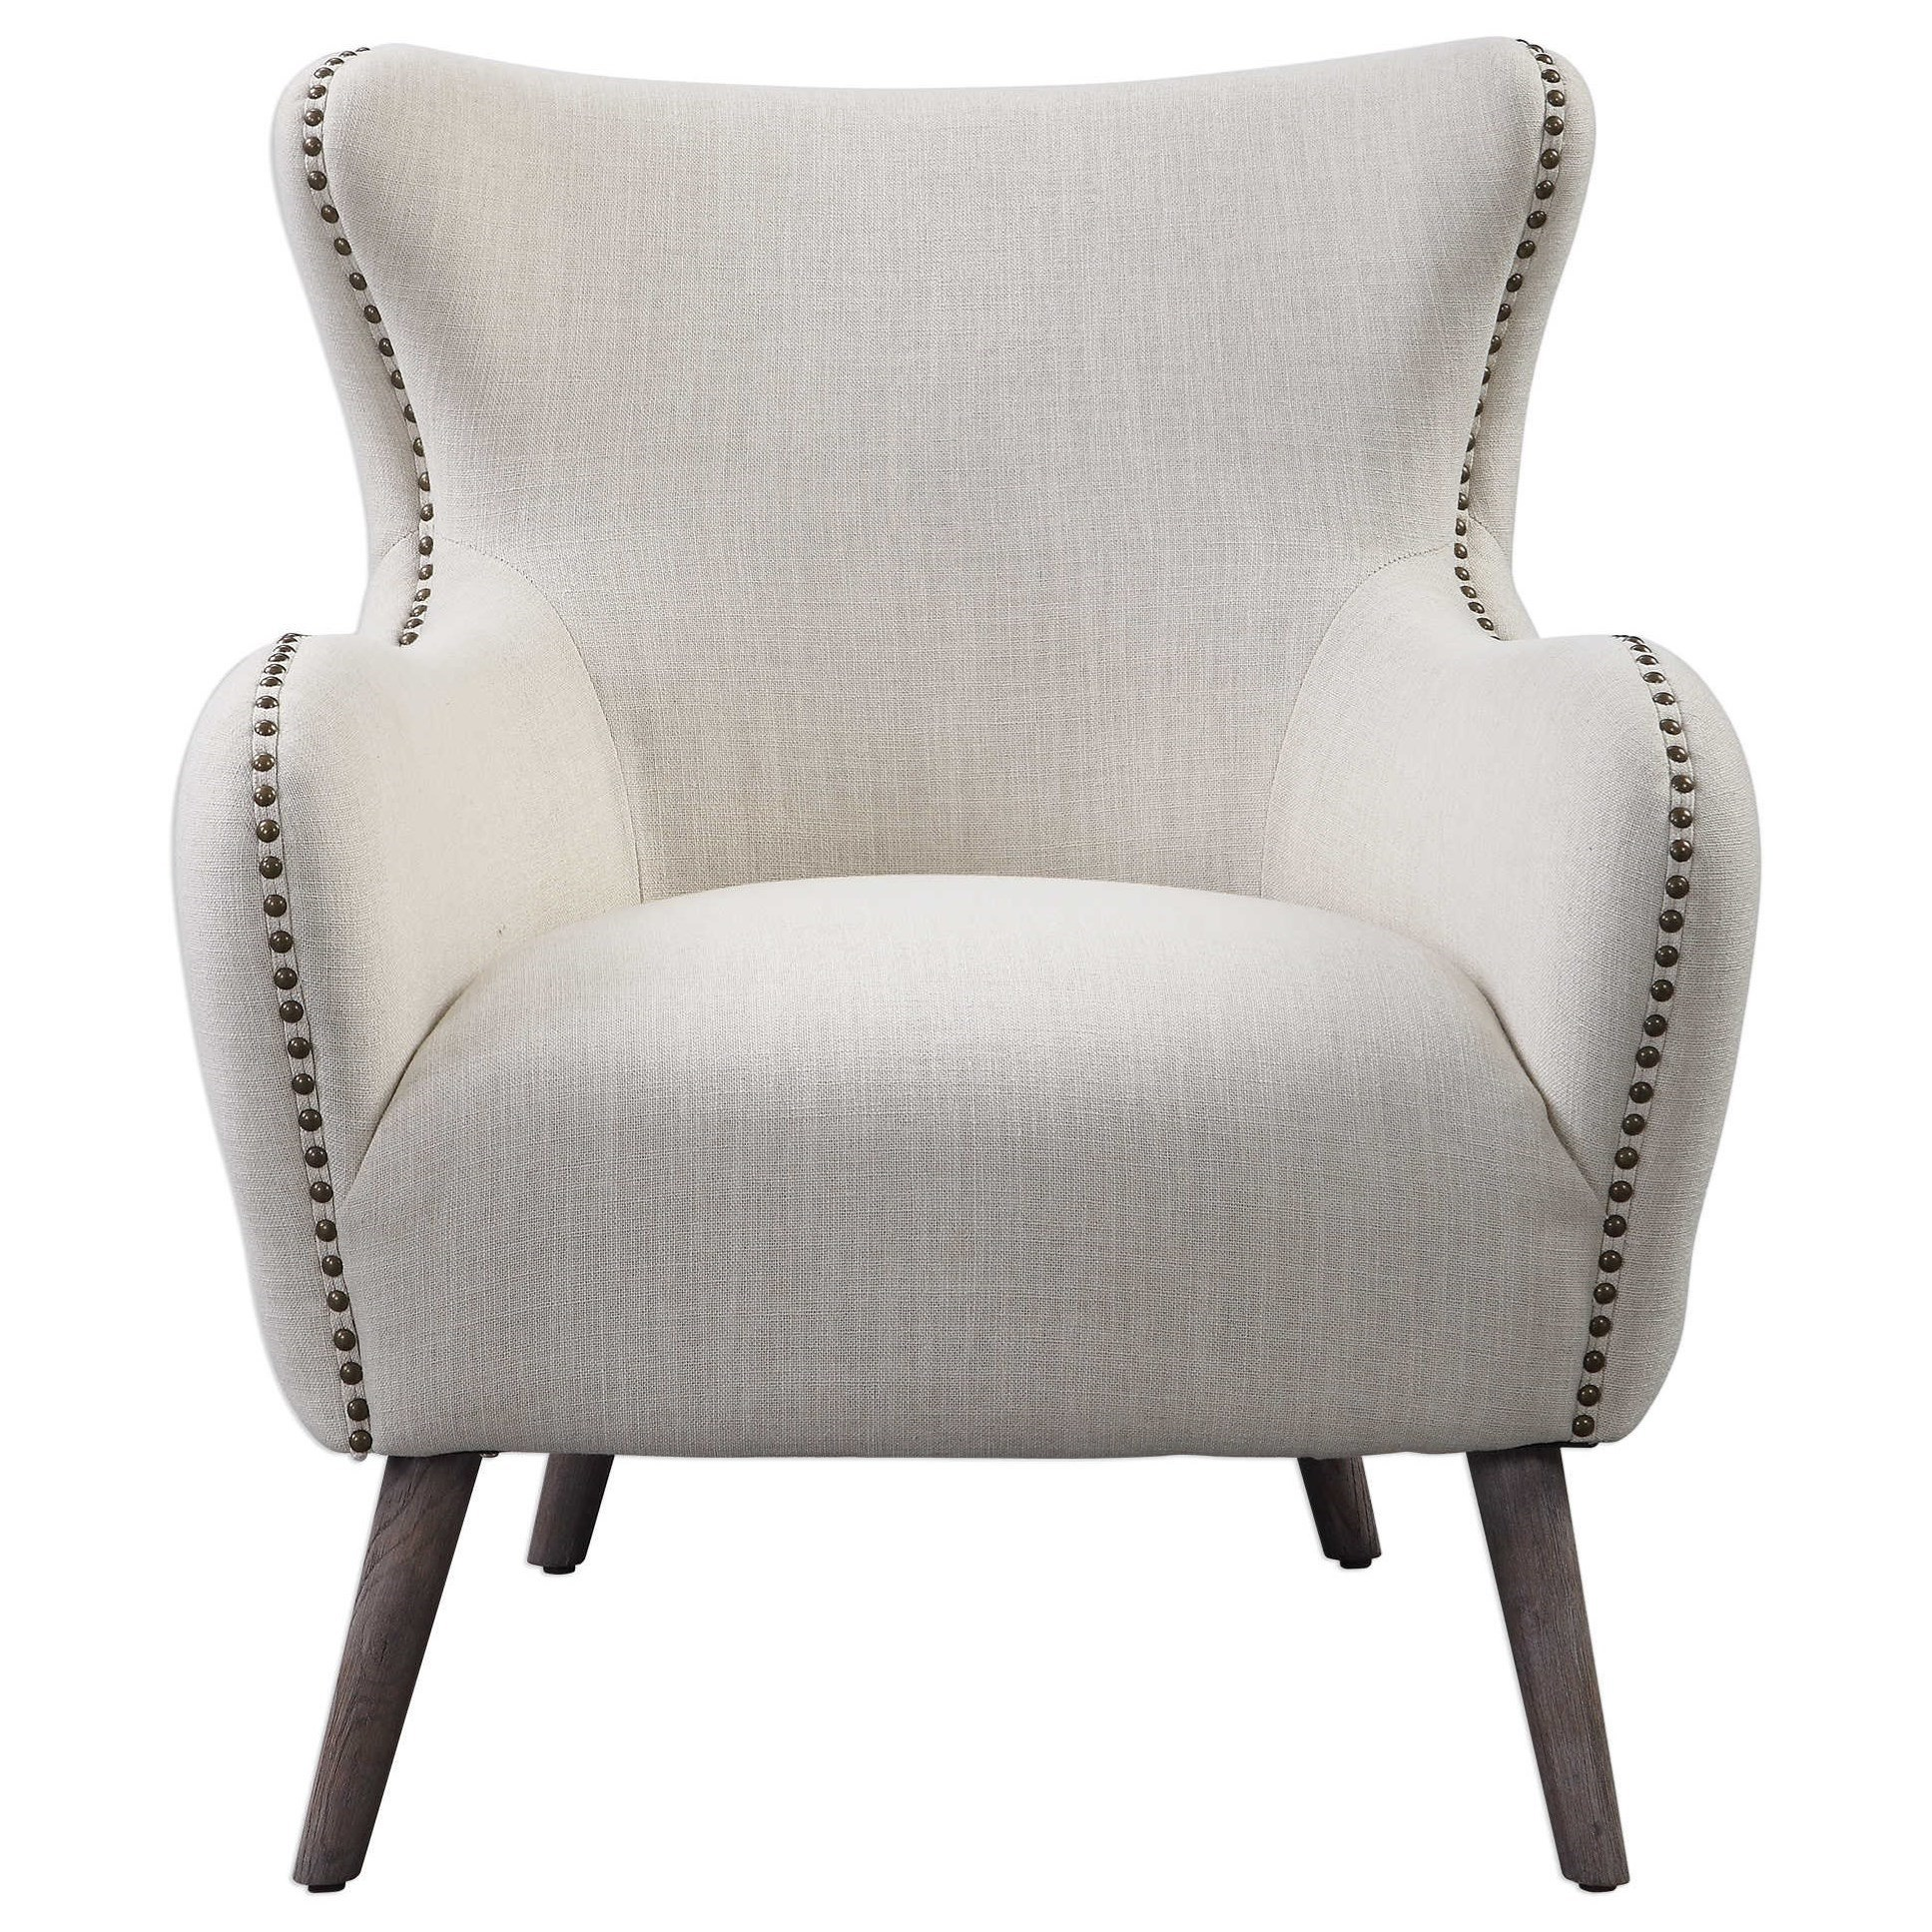 Accent Furniture - Accent Chairs Donya Cream Accent Chair by Uttermost at Dunk & Bright Furniture